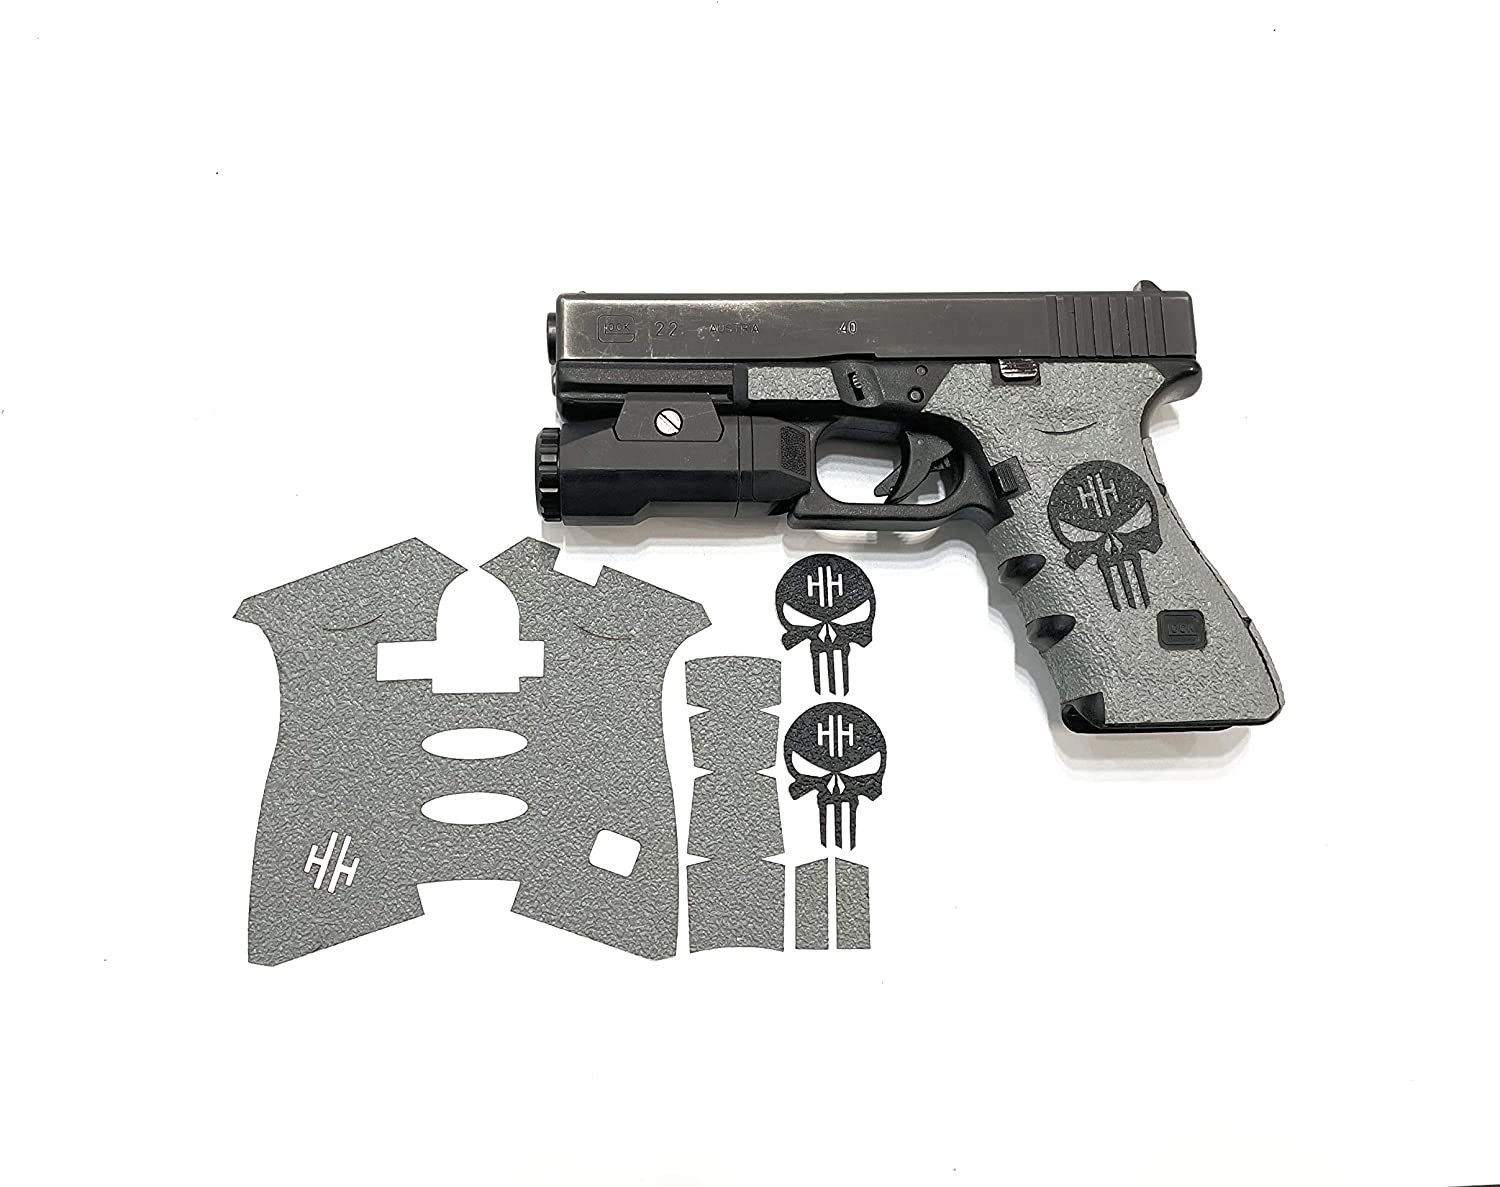 Handleitgrips Gray Direct stock discount Textured Rubber Gun Inventory cleanup selling sale Enhancement with Sku Grip